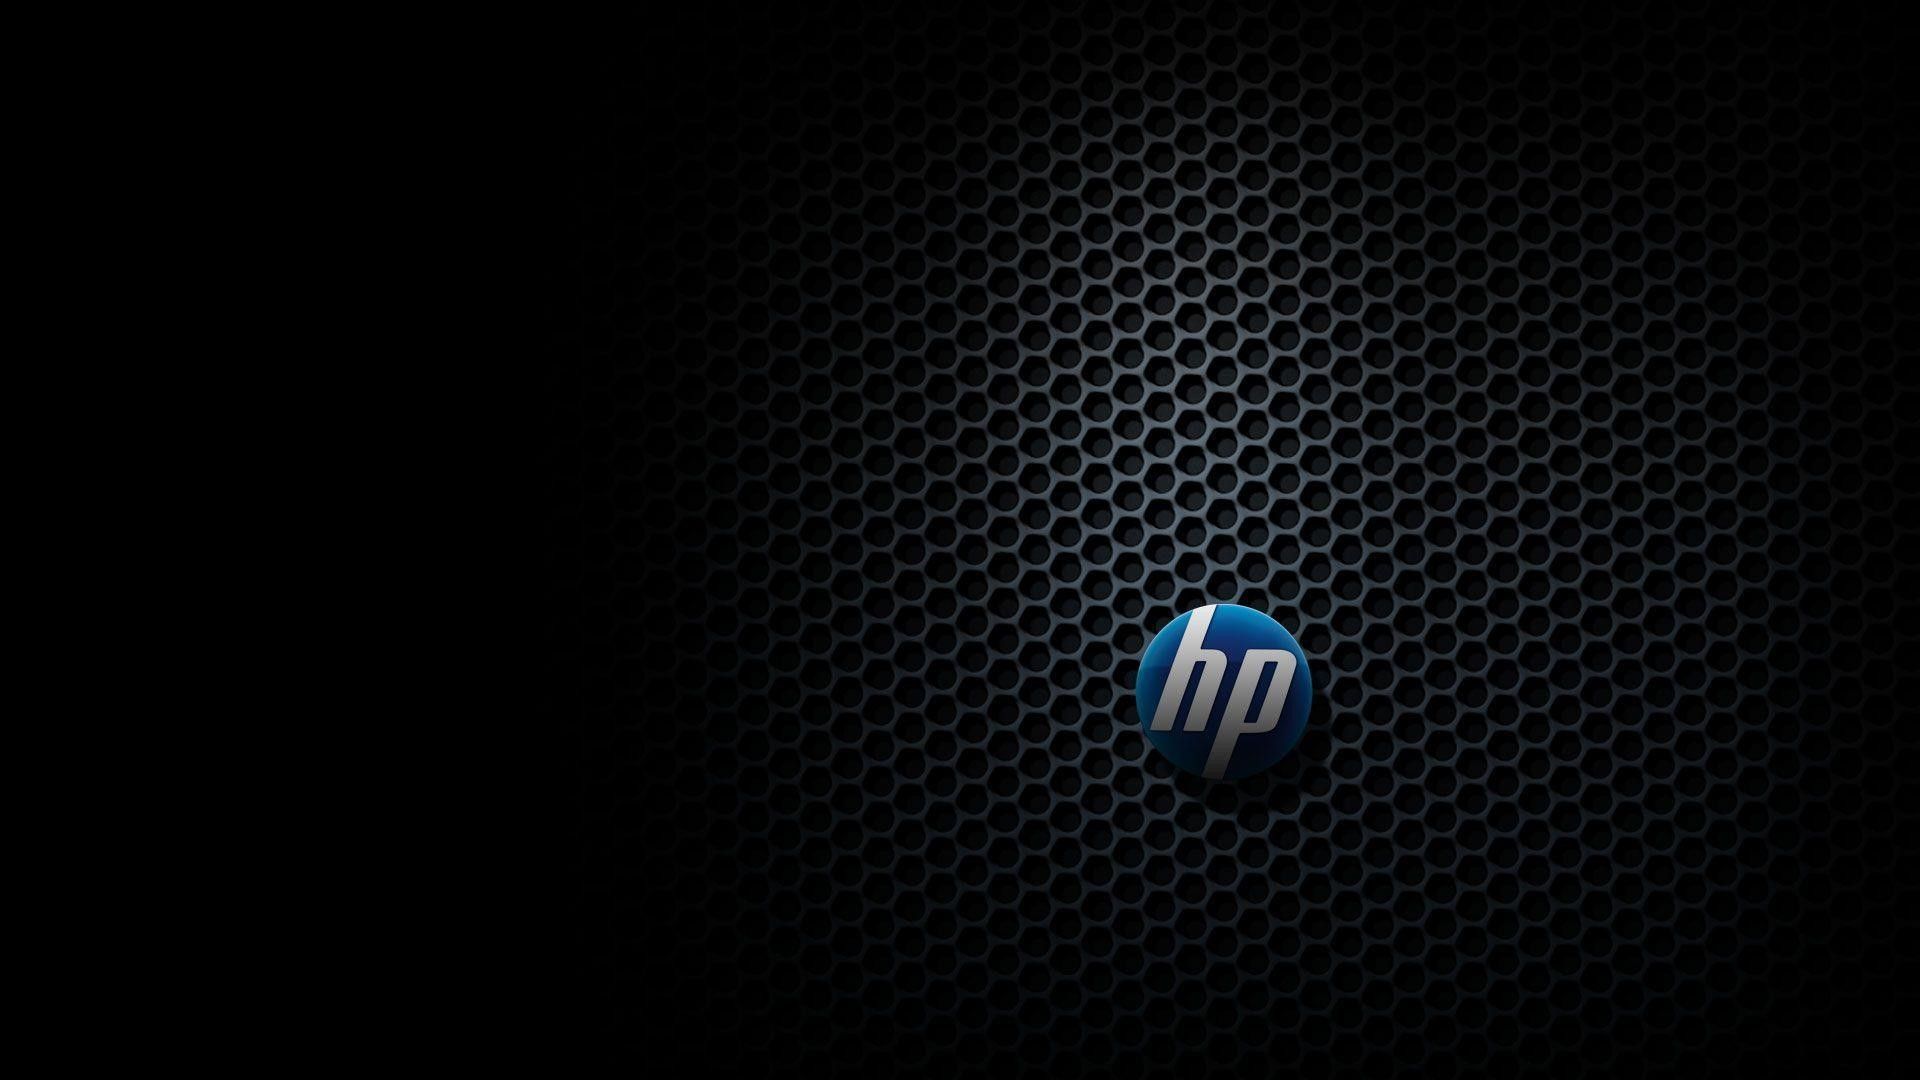 Wallpaper Hp Posted By Ethan Tremblay